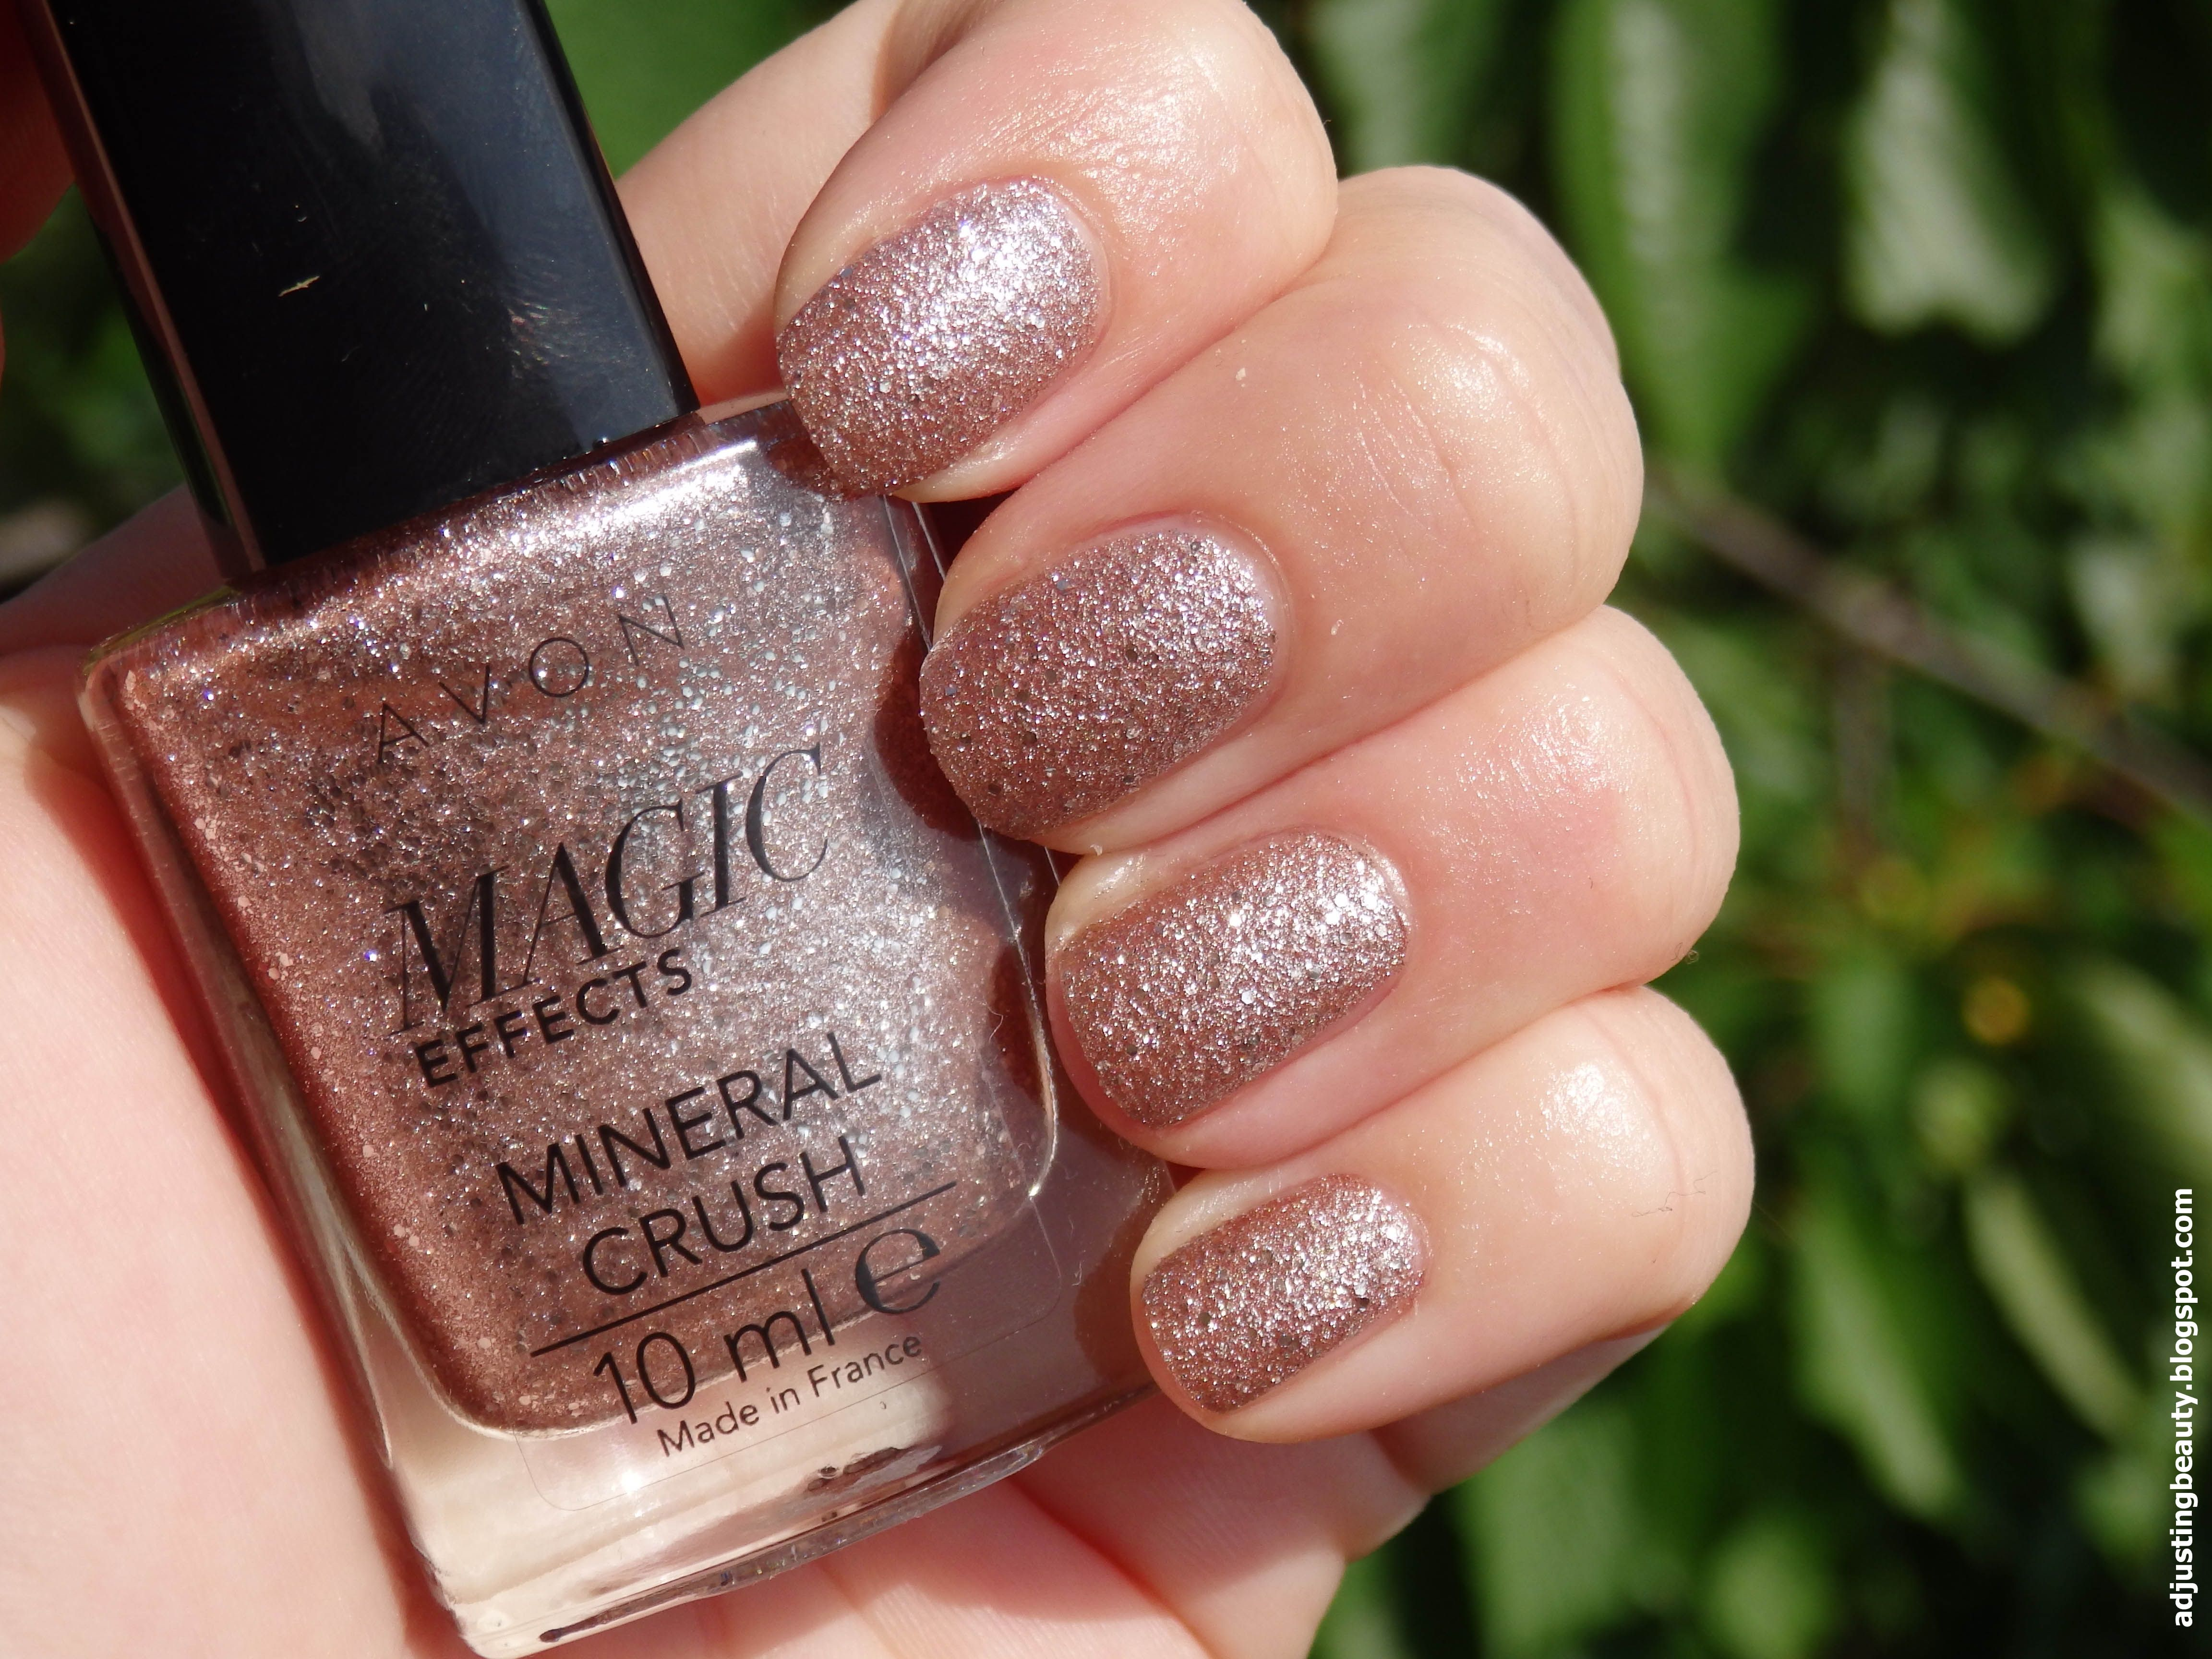 Review of Avon Magic Effects Mineral Crush nail polish in Pearl | My ...